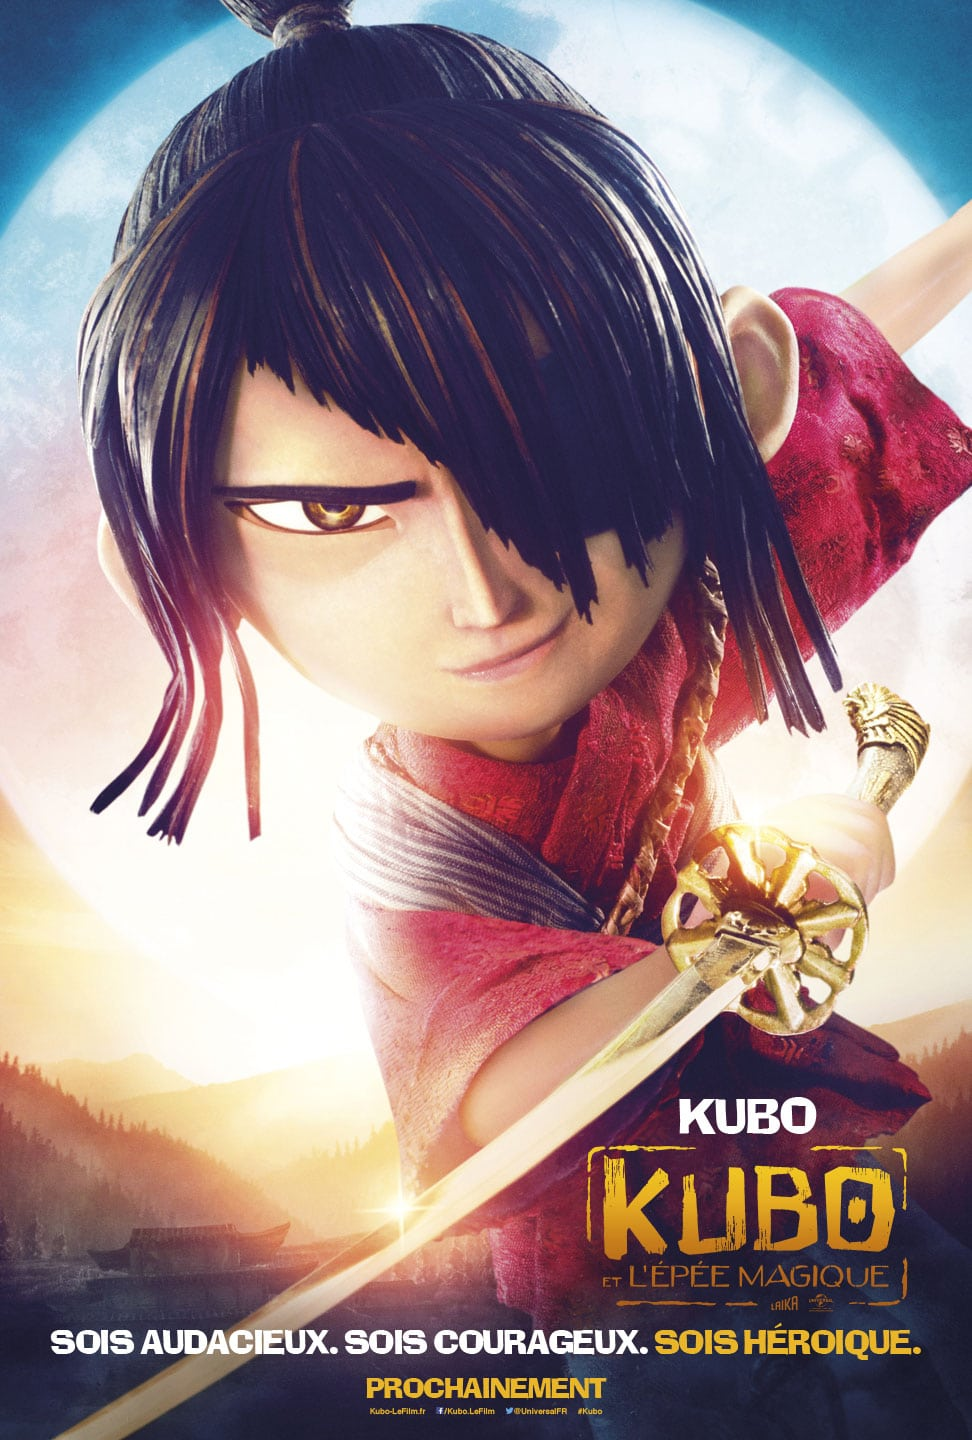 kubo_armure_magique_affiche